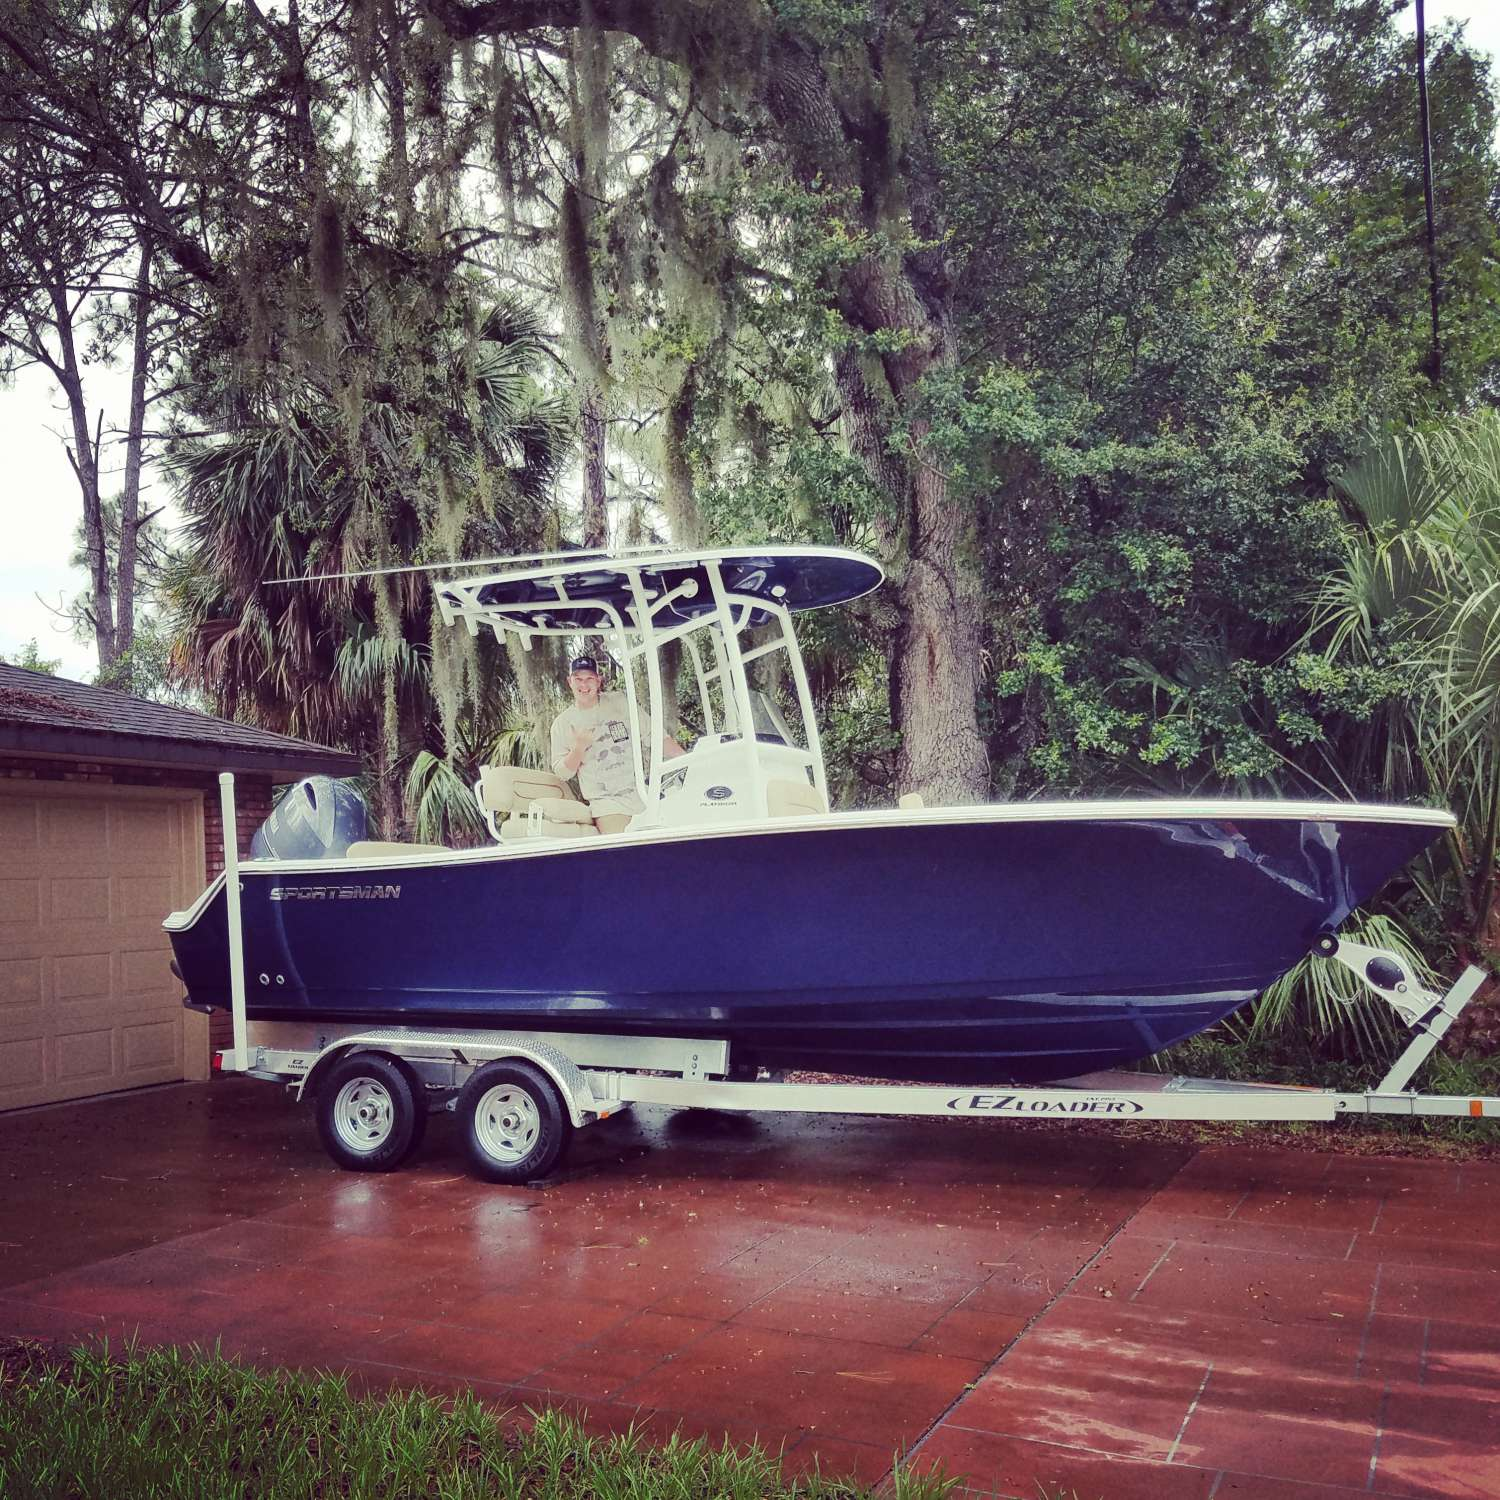 Title: Home At Last - On board their Sportsman Open 212 Center Console - Location: Port Saint Lucie, Florida. Participating in the Photo Contest #SportsmanJune2017